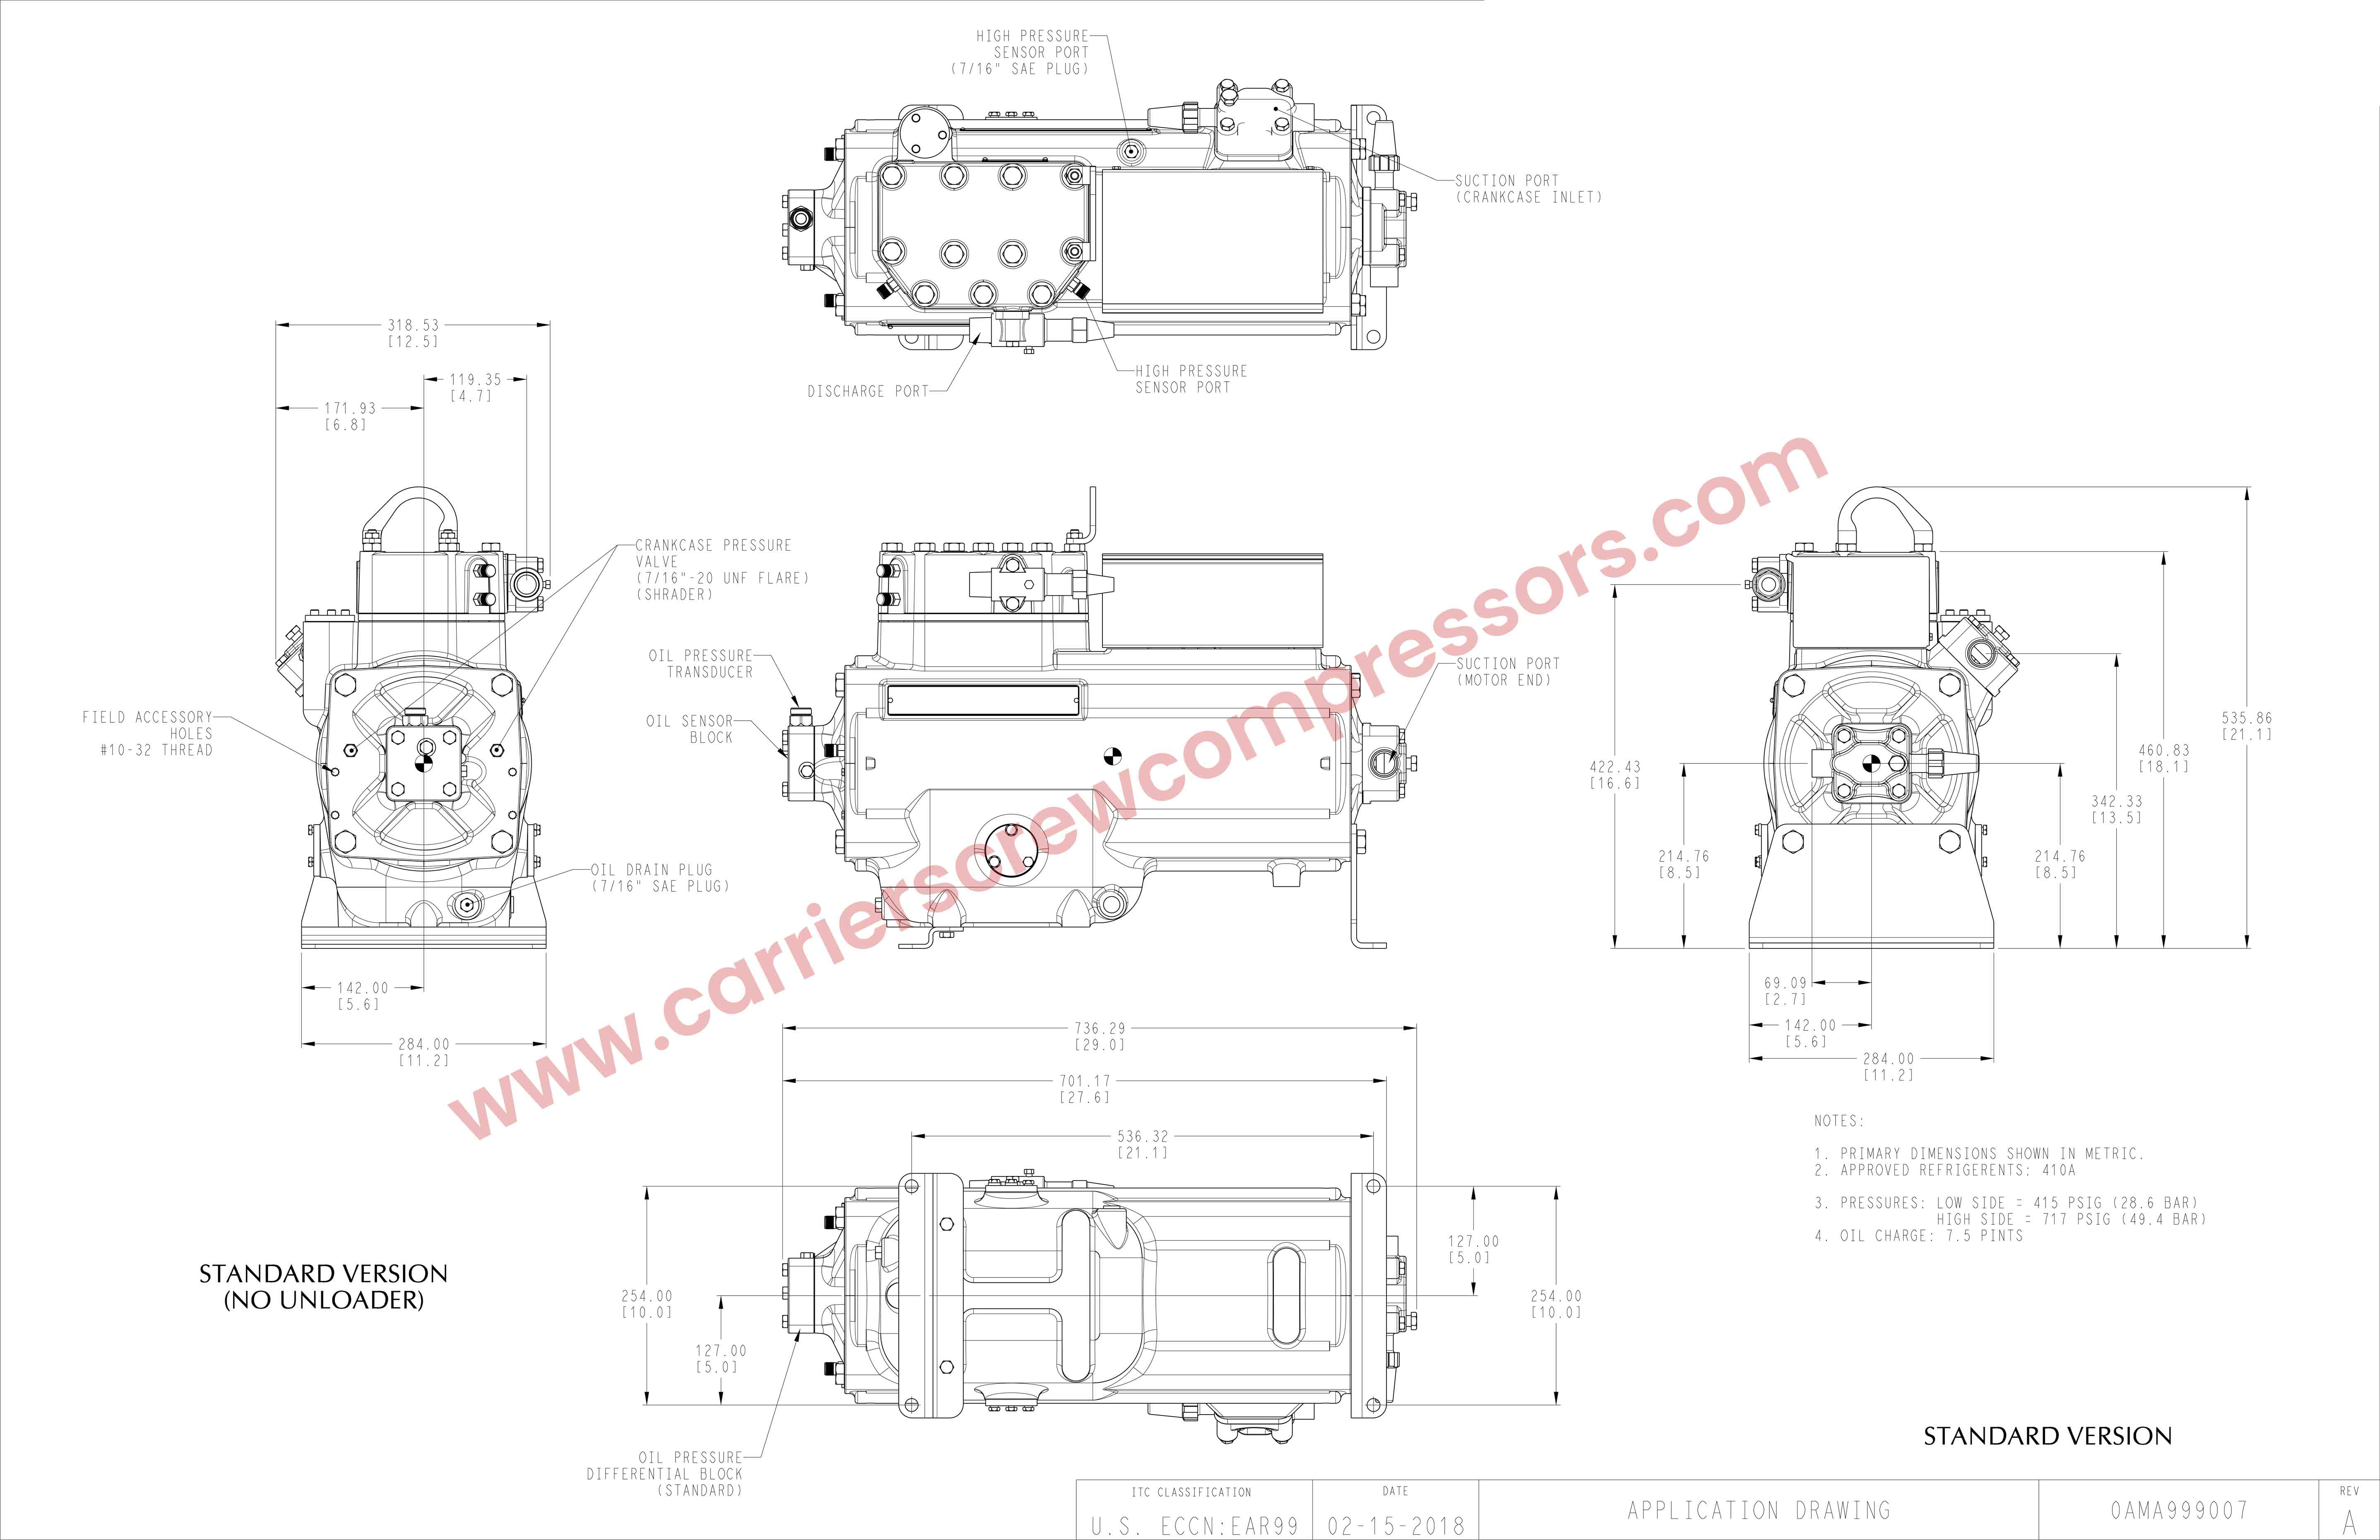 Carrier 06M Application Drawing